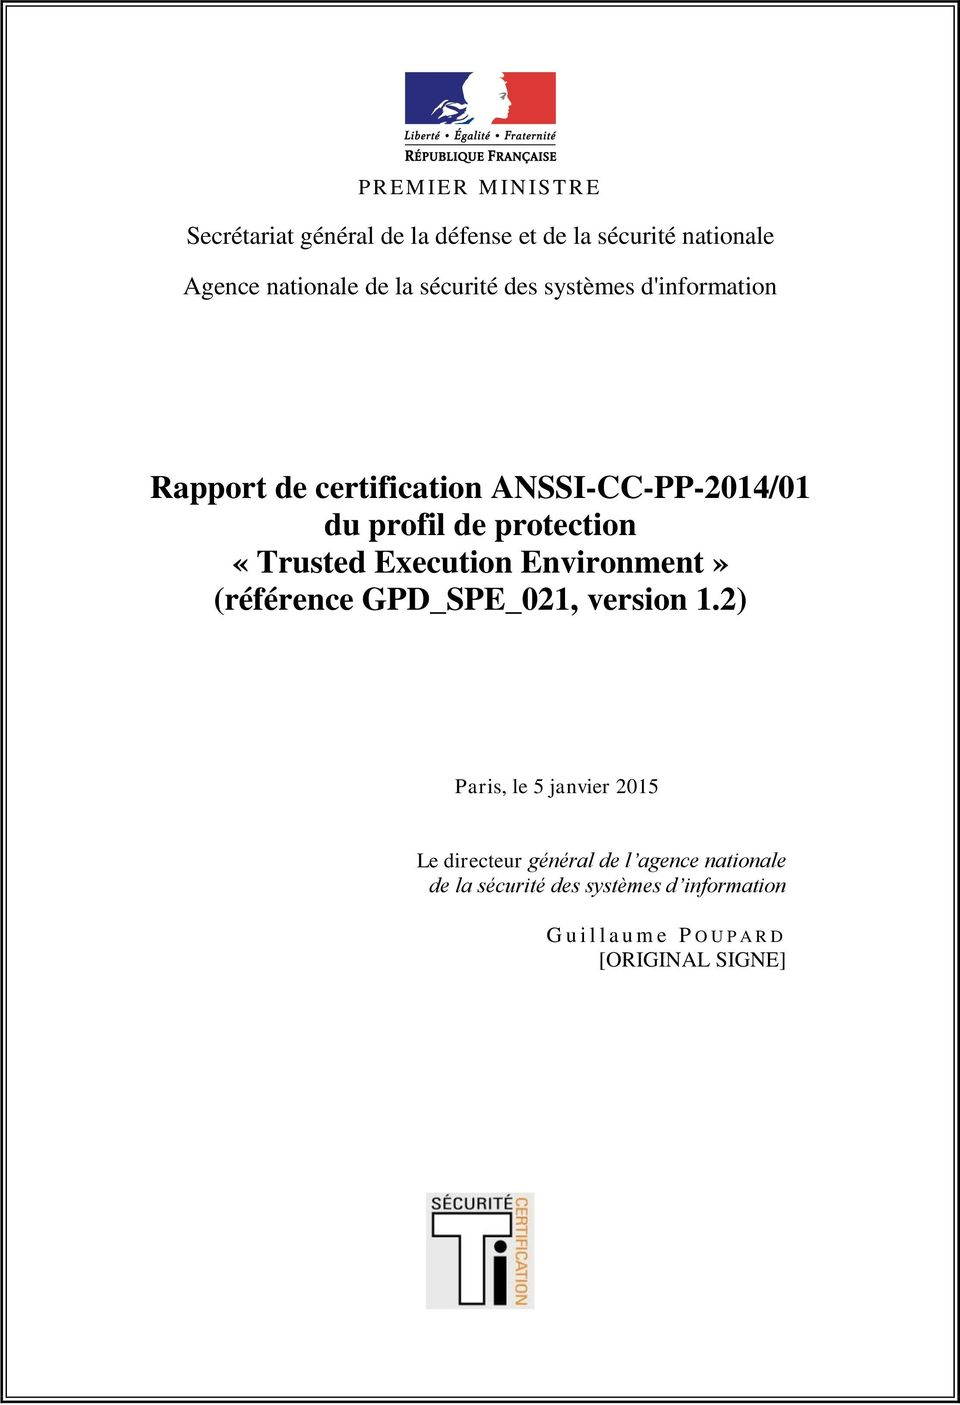 «Trusted Execution Environment» (référence GPD_SPE_021, version 1.